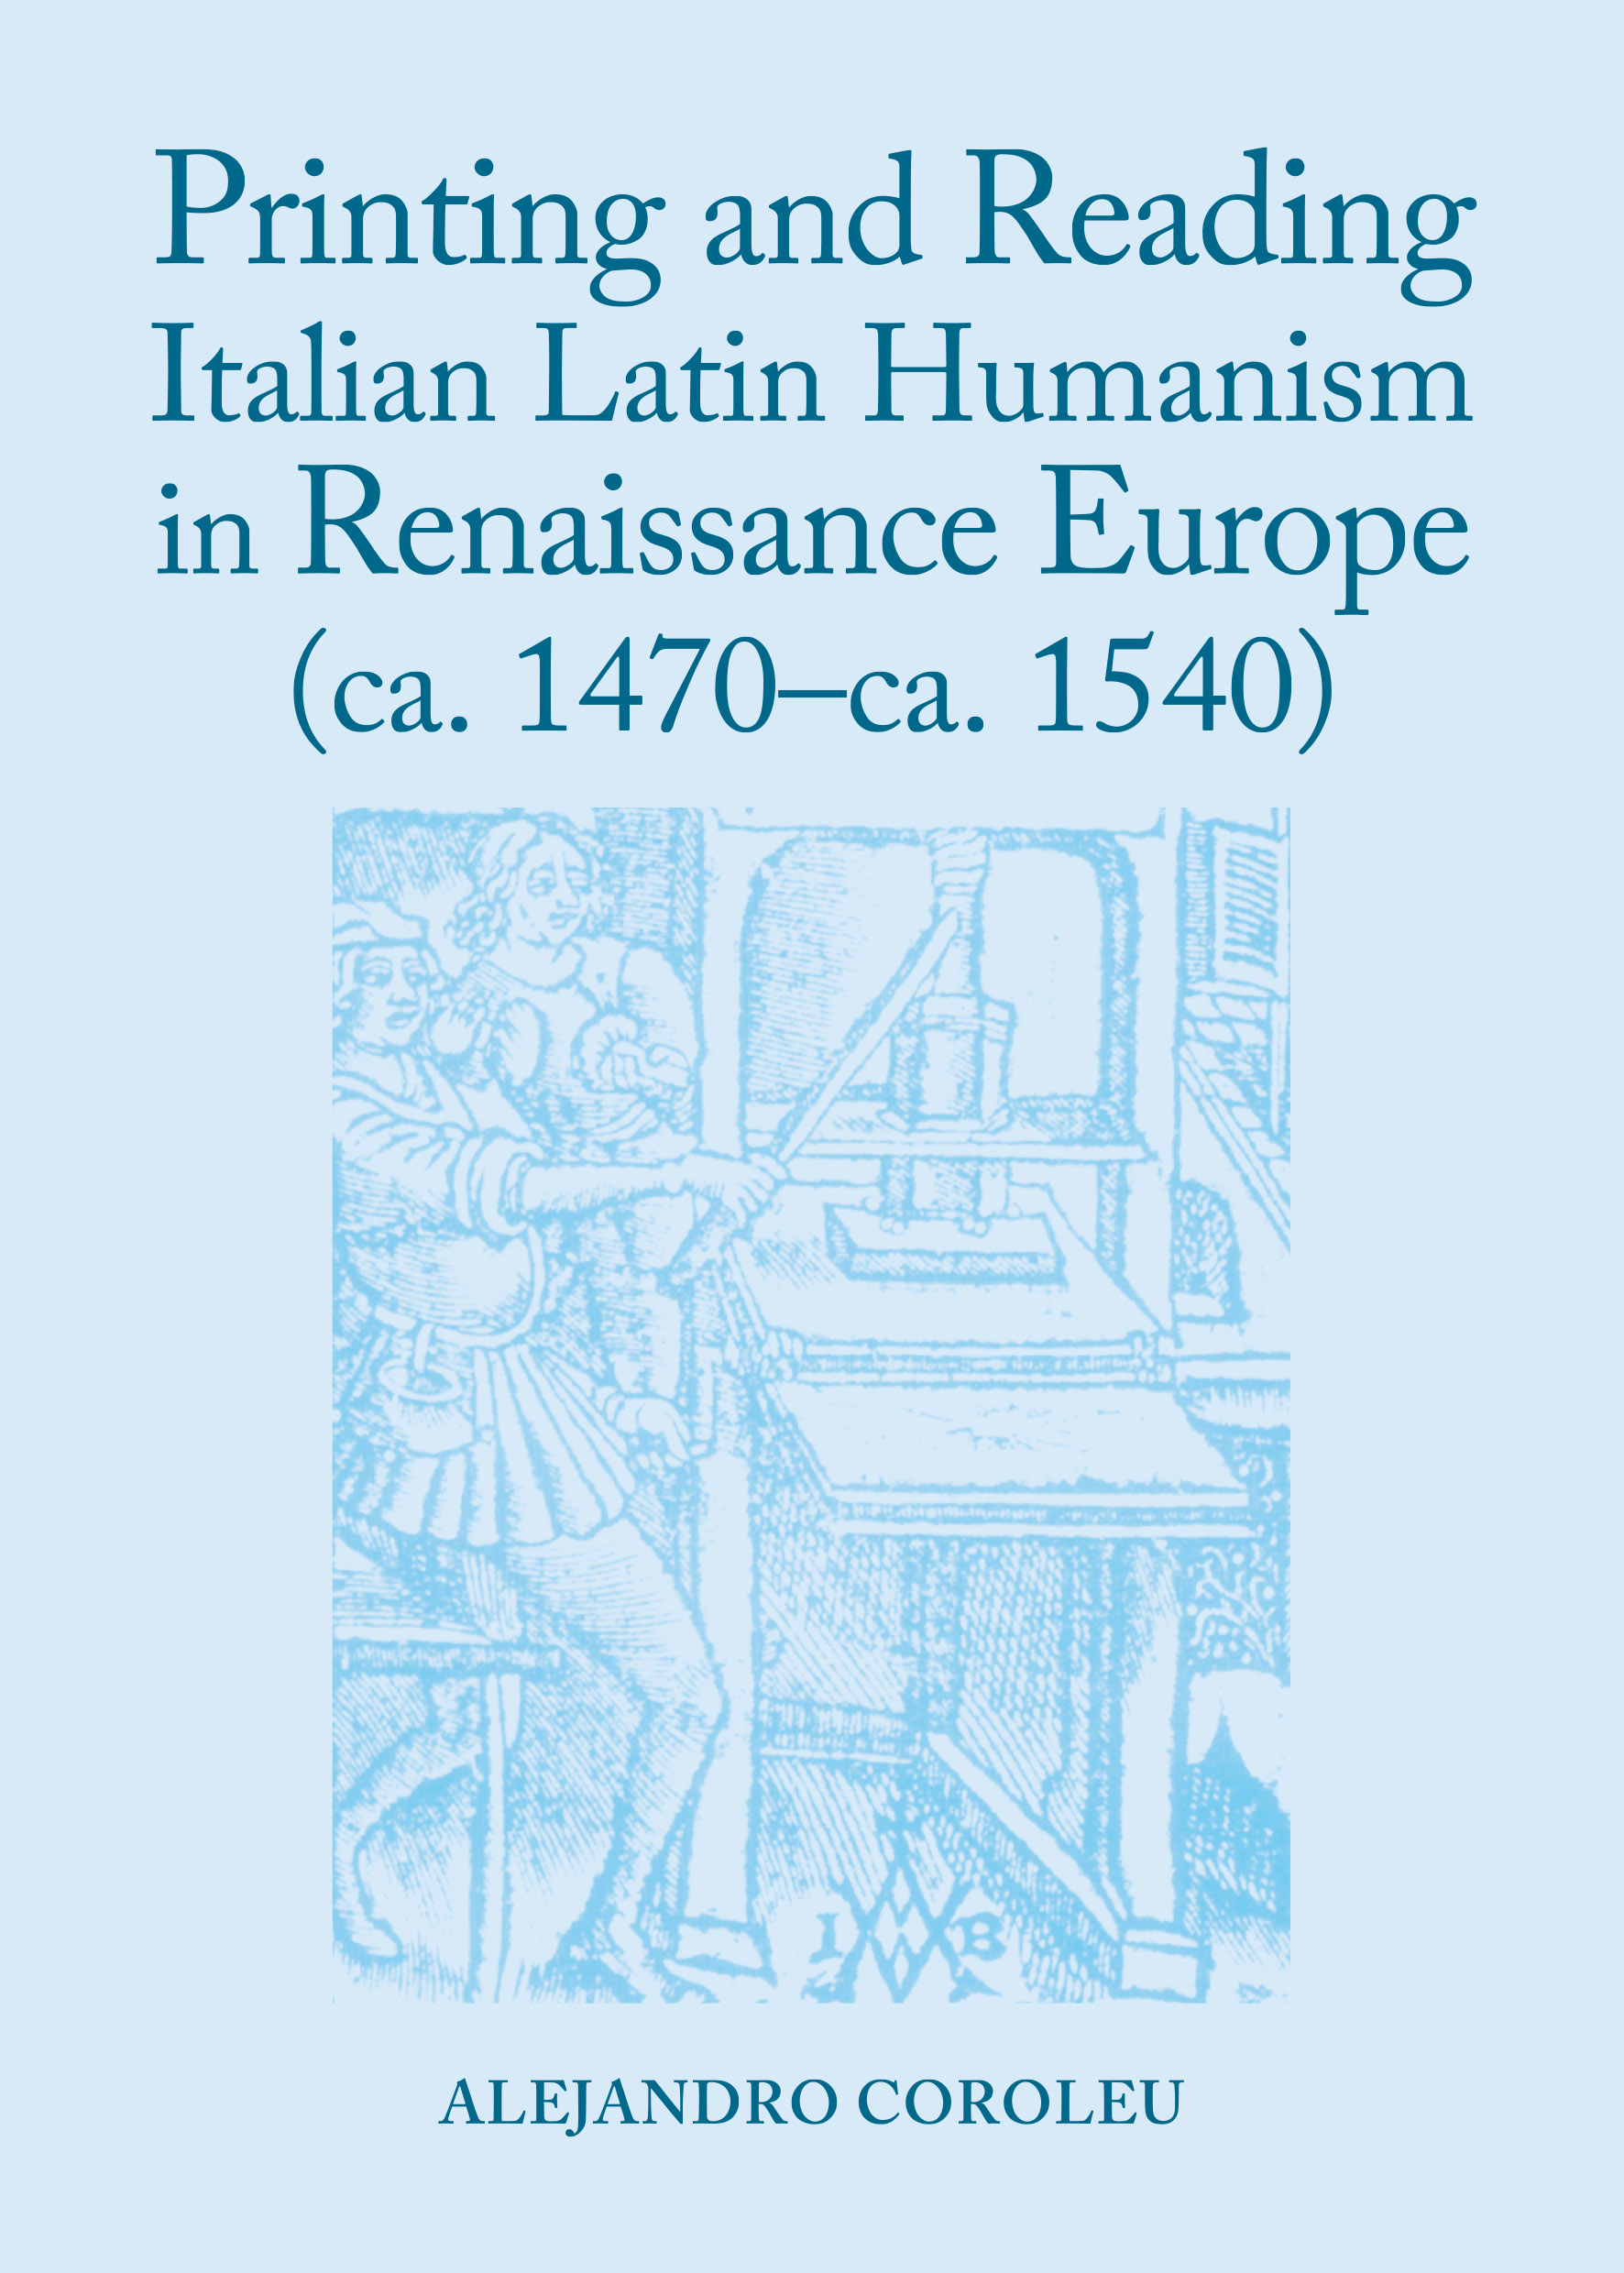 Printing and Reading Italian Latin Humanism in Renaissance Europe (ca. 1470-ca. 1540)